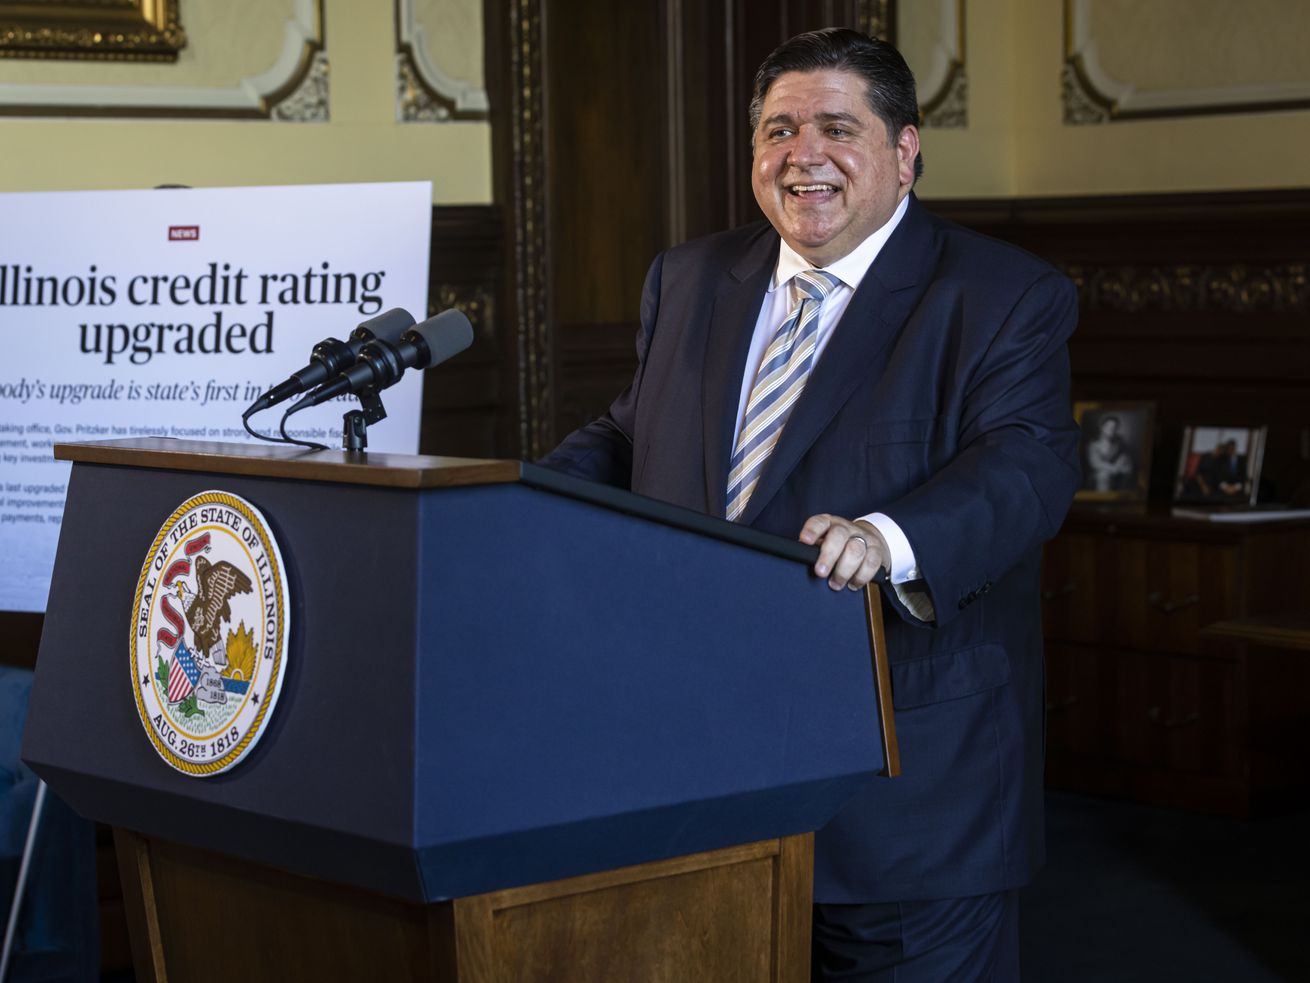 Gov. JB Pritzker discusses Moody's upgrade of the state's bond rating, the first rating upgrade from a credit rating agency in more than 20 years,